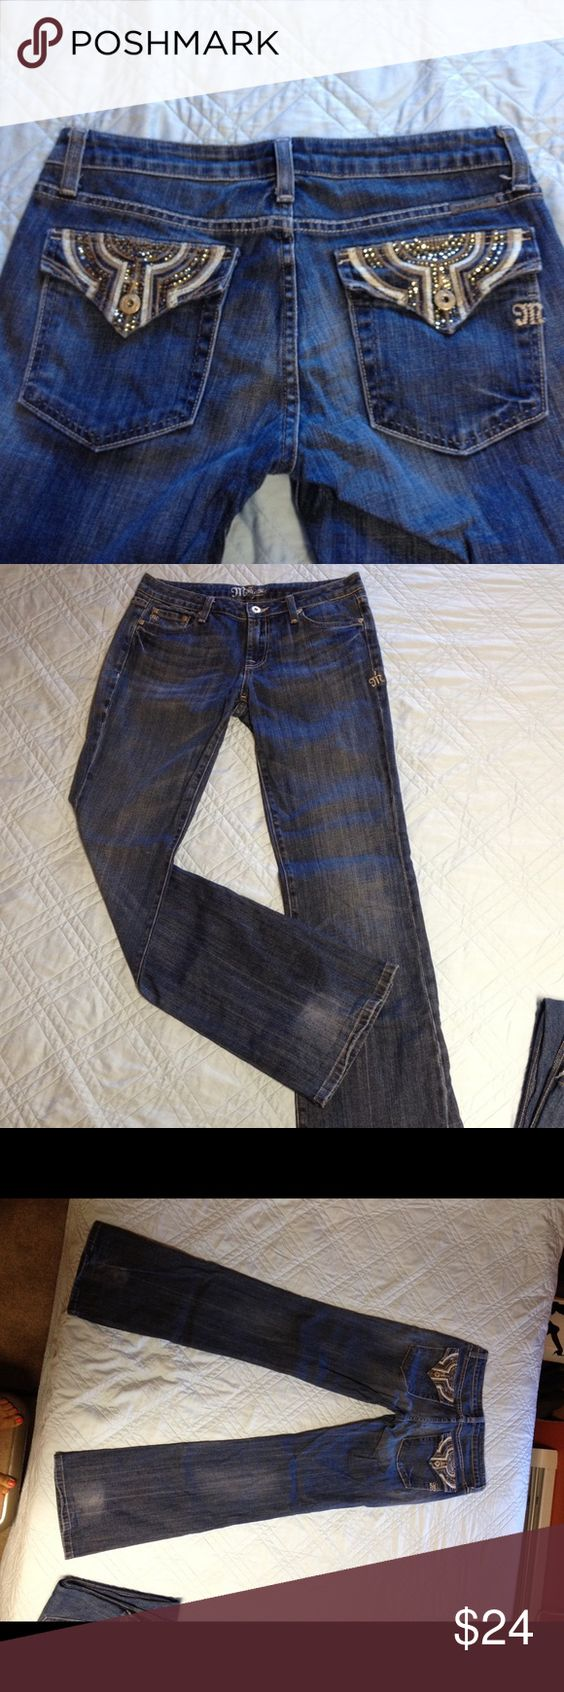 Miss Me Jeans Hey here's a really fun pair of miss me jeans size 30. These are in good used condition I do have some rhinestones that are loose or missing on the back pockets. Please take a look at the pictures. Miss Me Jeans